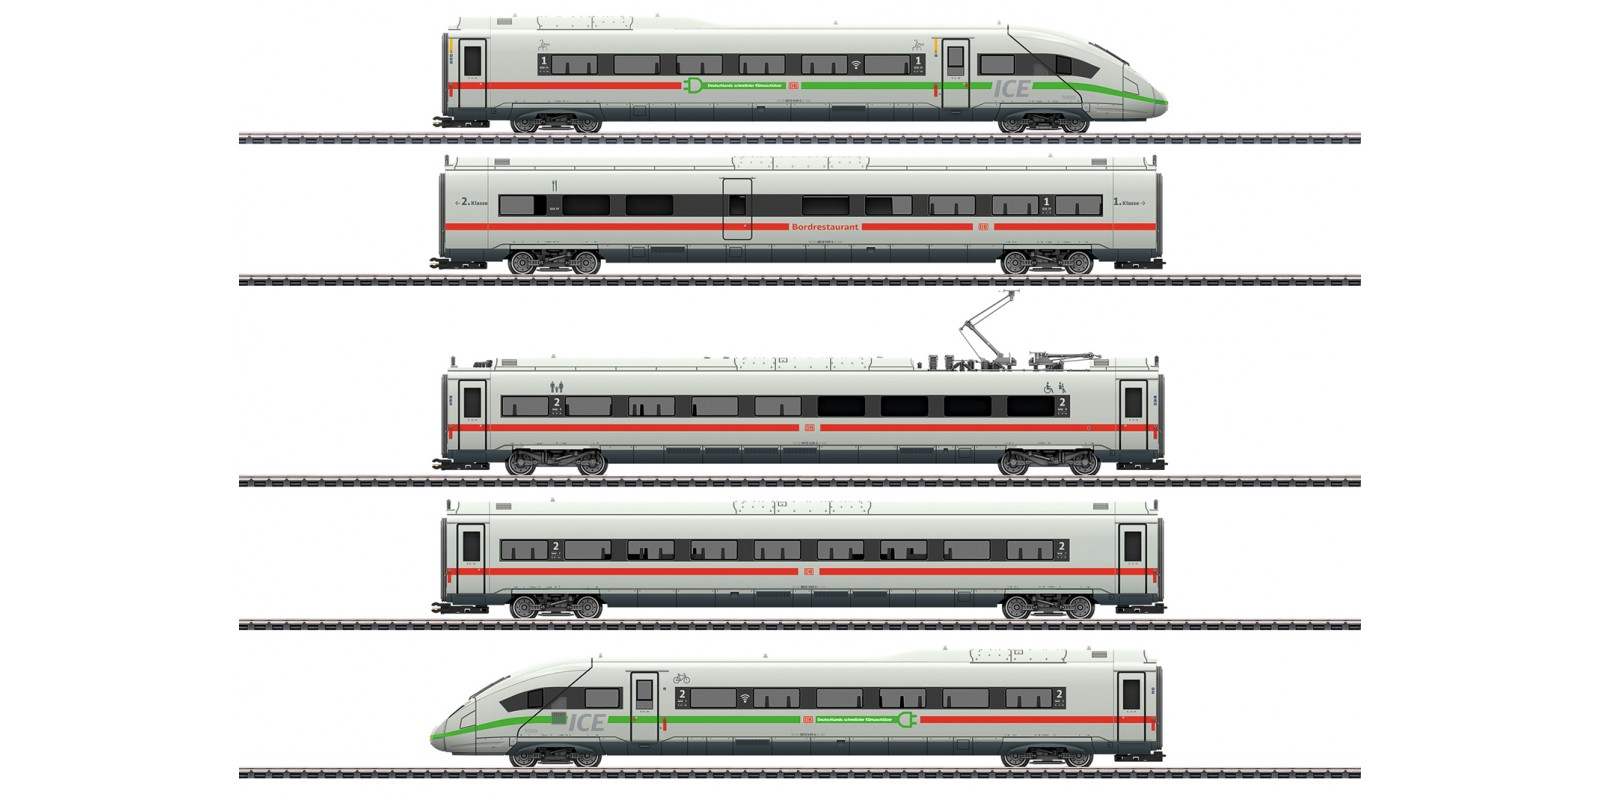 39716 Class 412/812 ICE 4 Powered Railcar Train with a Green Stripe